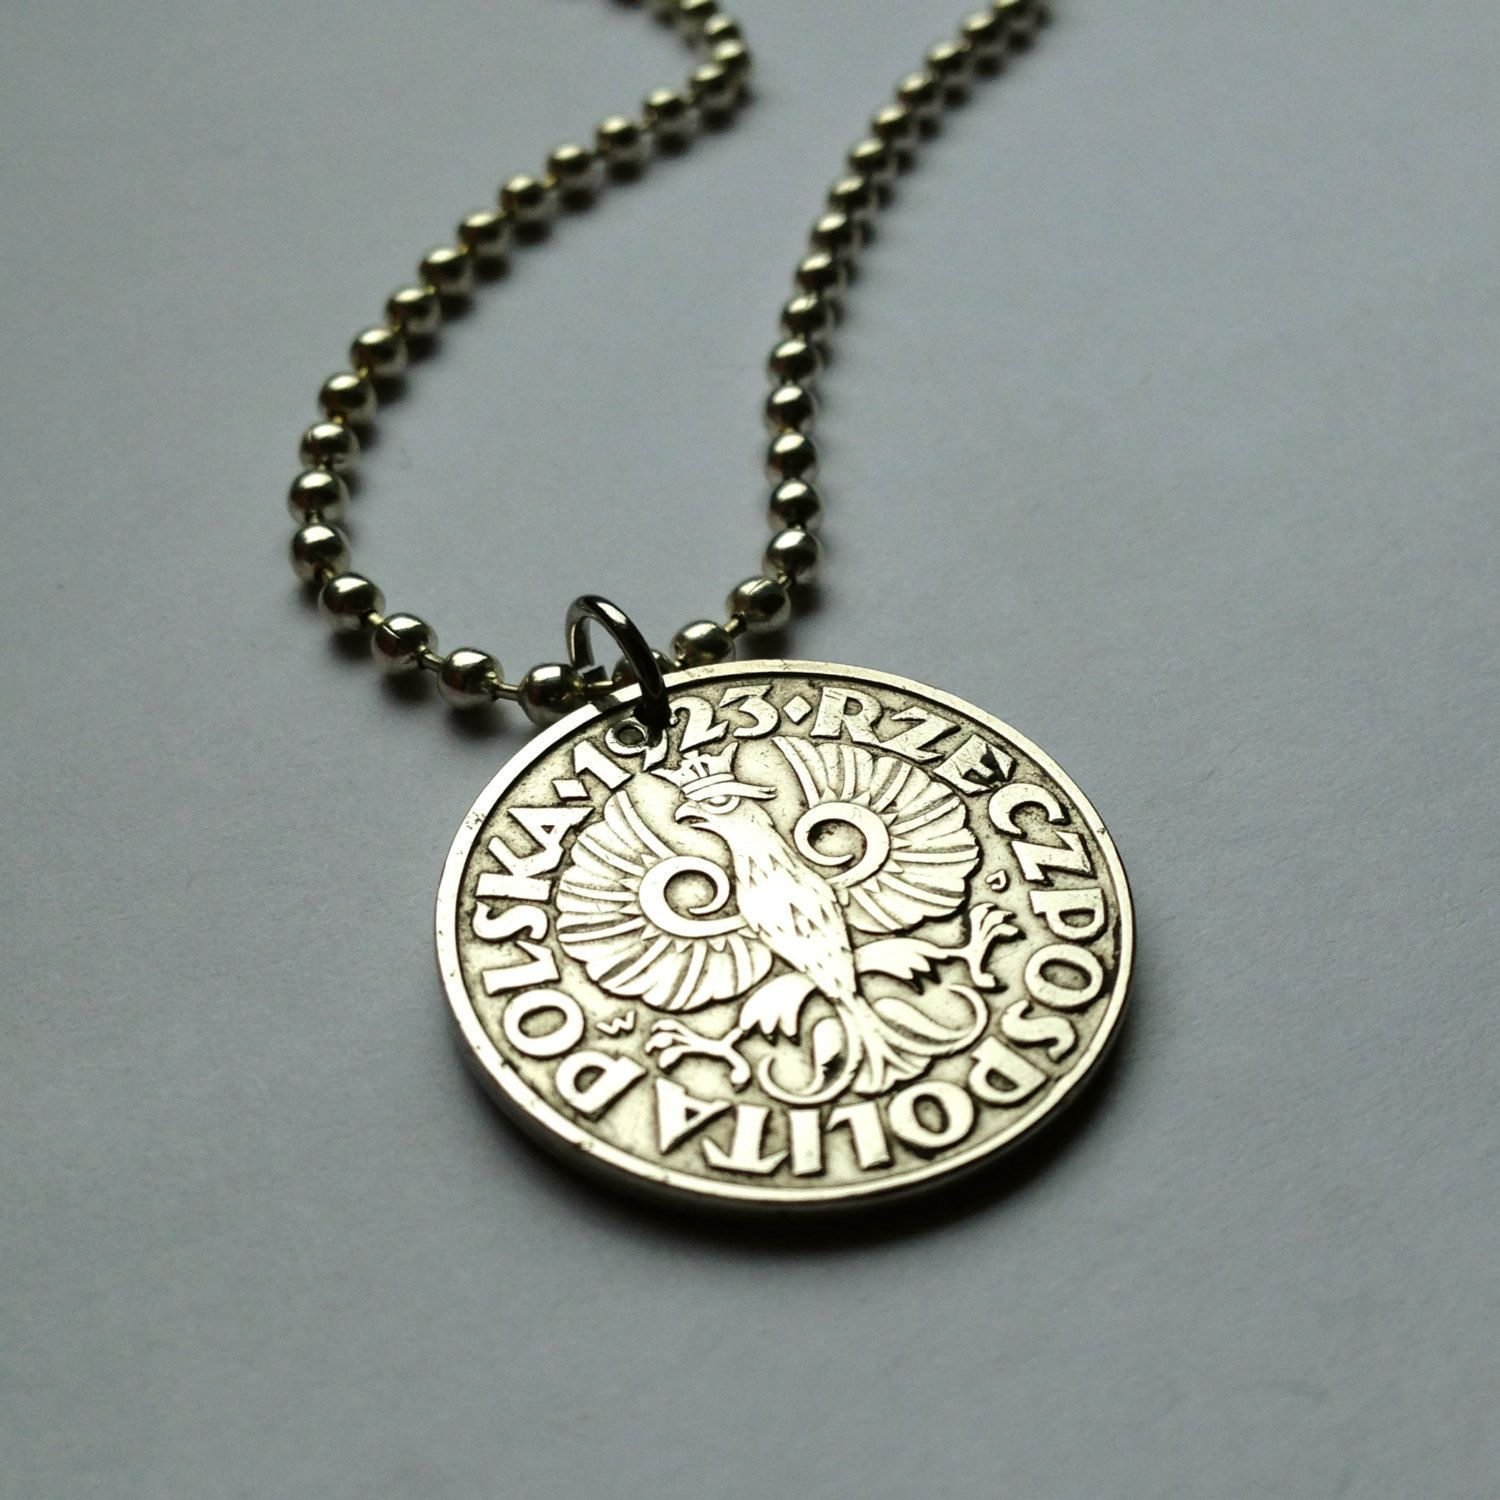 coin pin coins lockets currently crushes crushing necklaces on jewel and